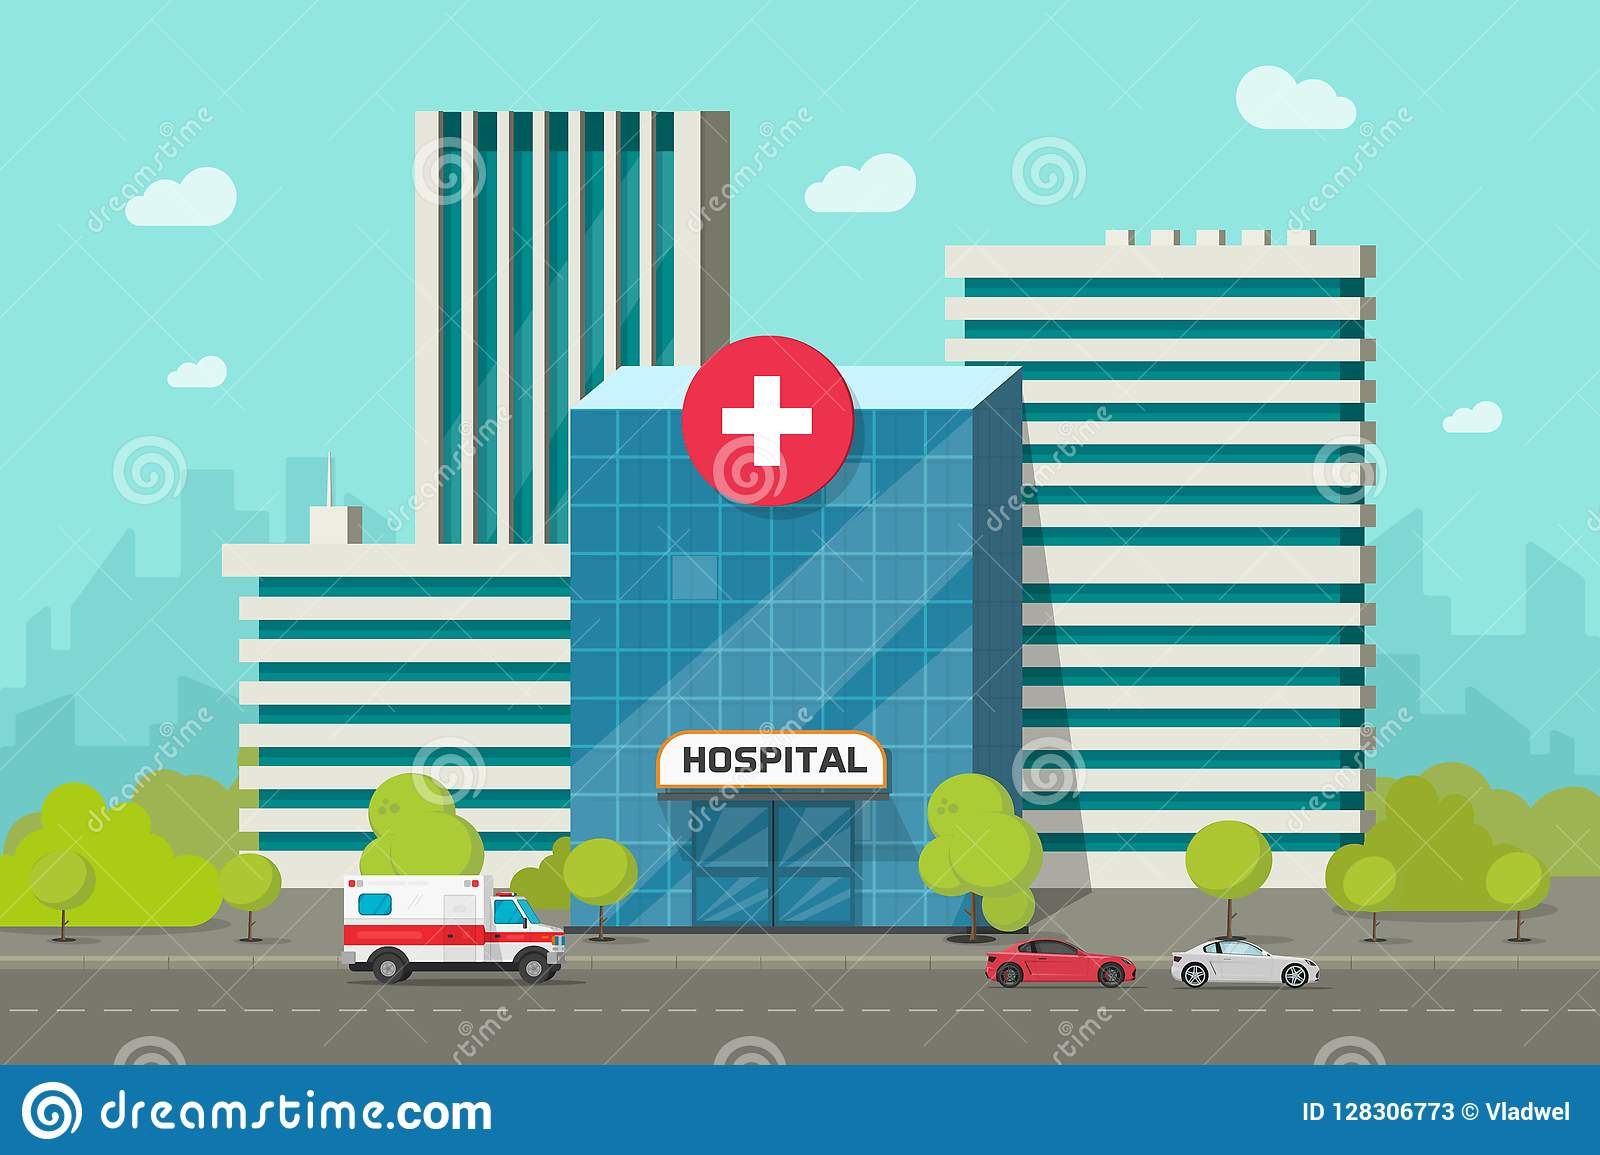 hight resolution of hospital building vector illustration flat cartoon modern medical center or clinic on city street clipart